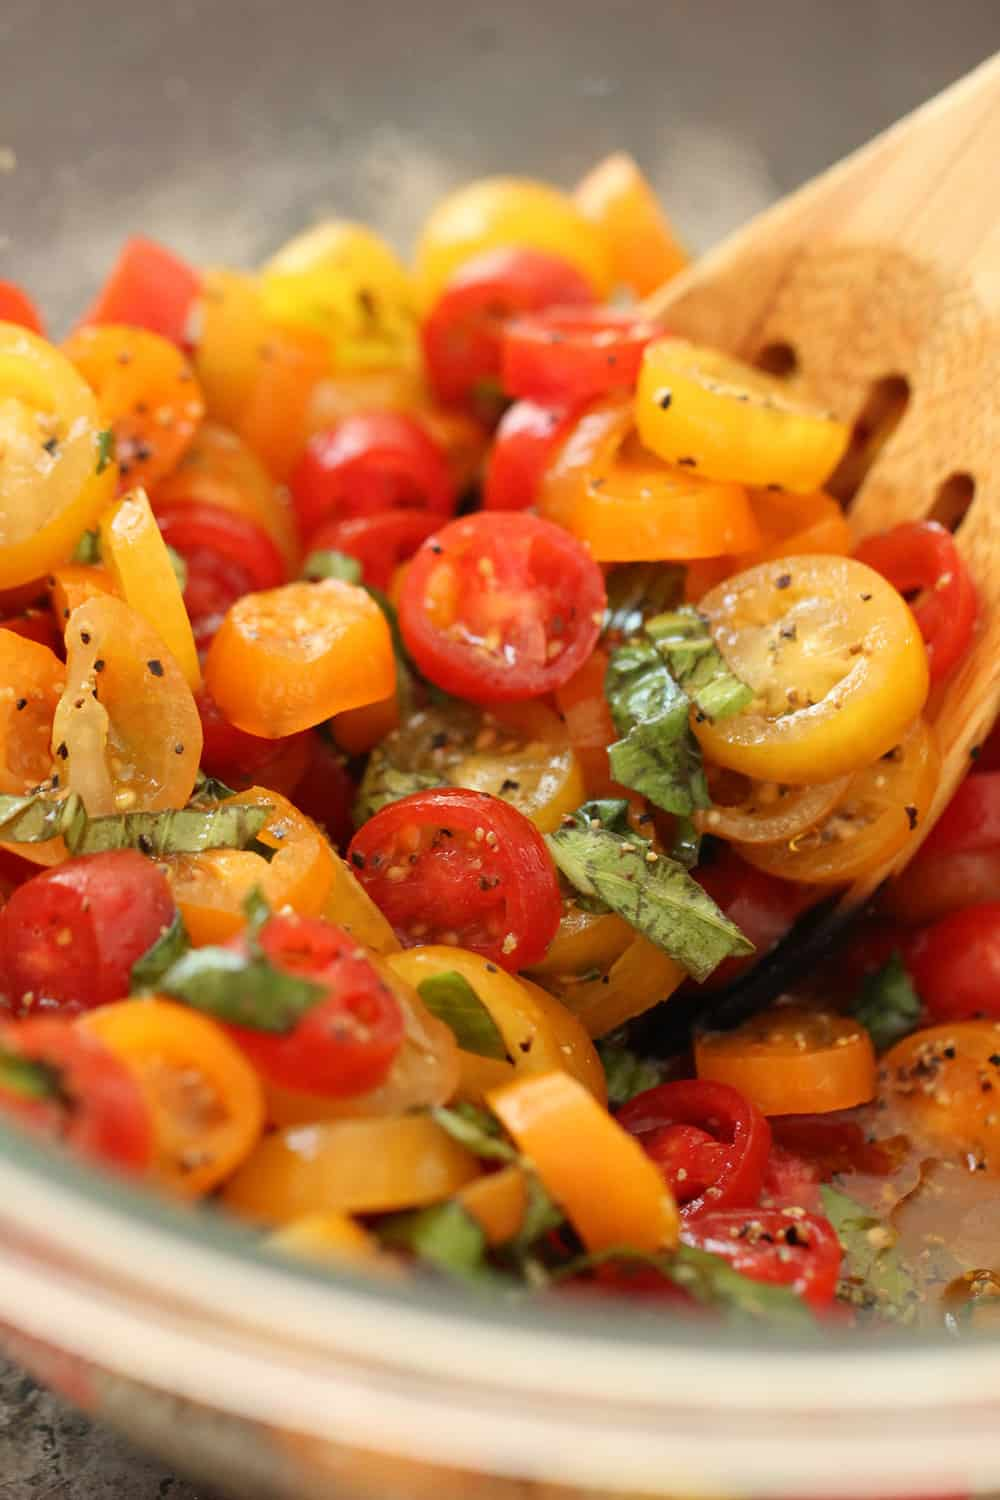 Classic Tomato and Basil Bruschetta